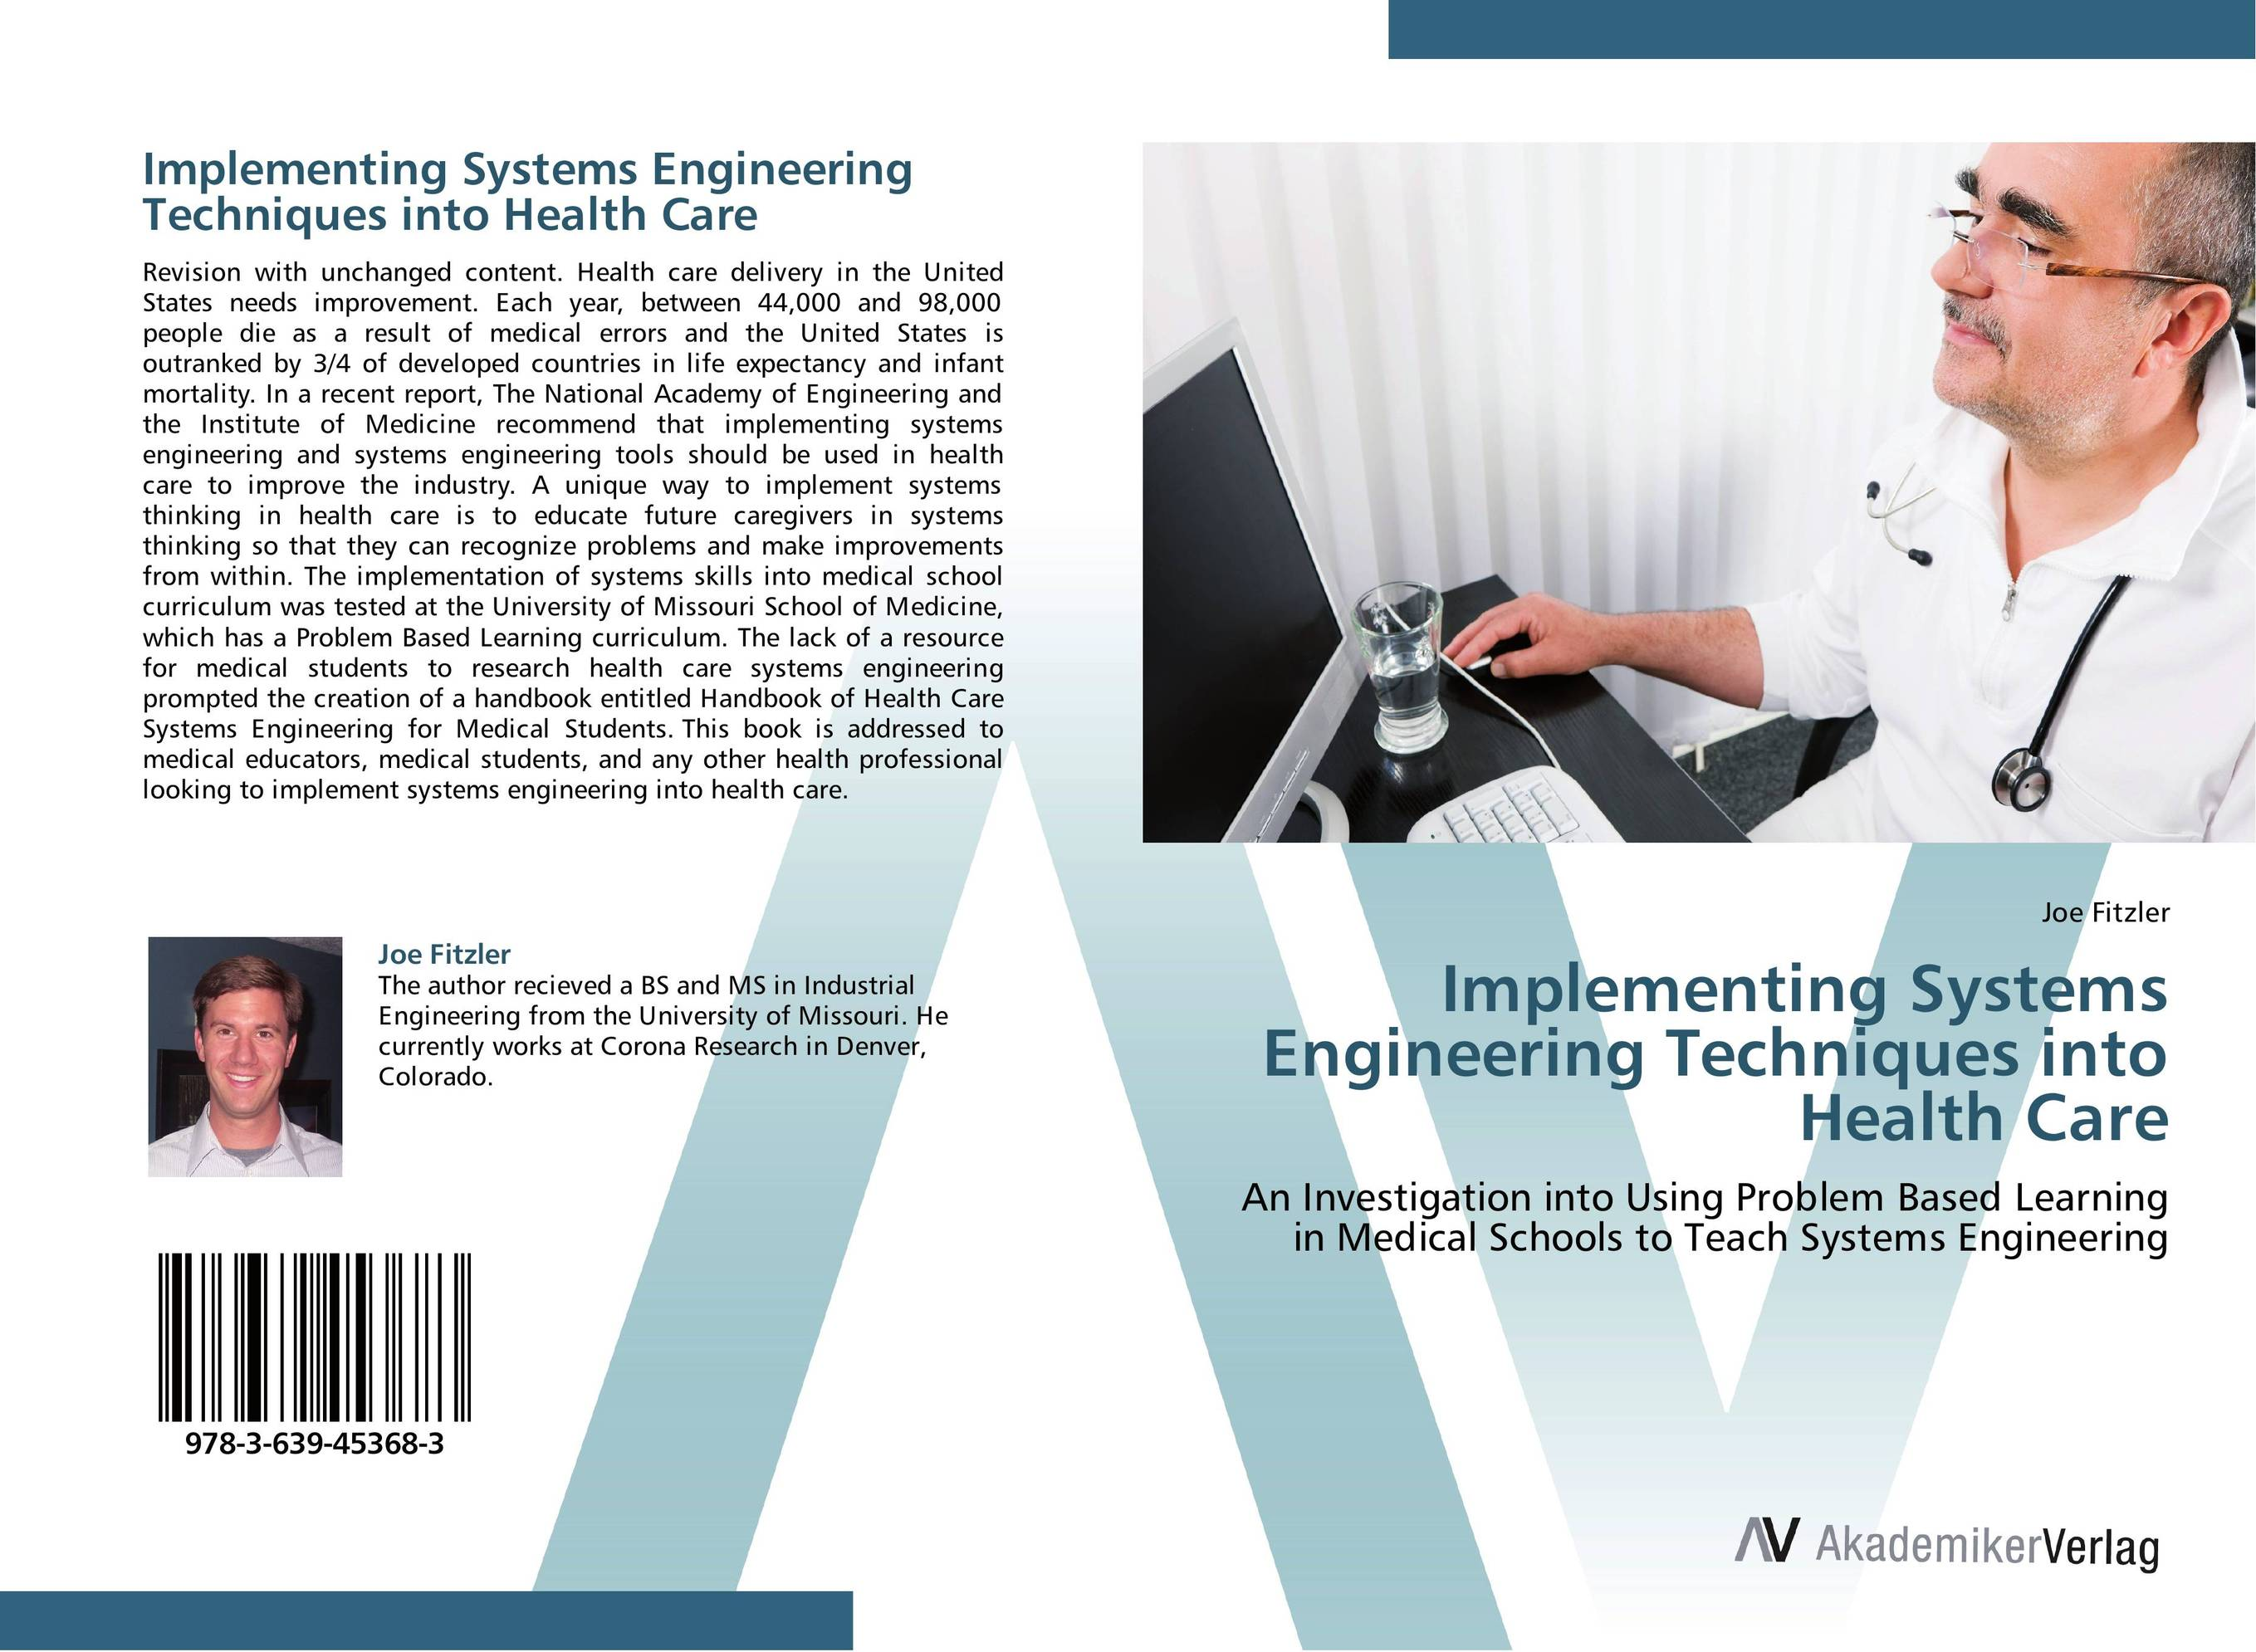 Implementing Systems Engineering Techniques into Health Care prasanta kumar hota and anil kumar singh synthetic photoresponsive systems